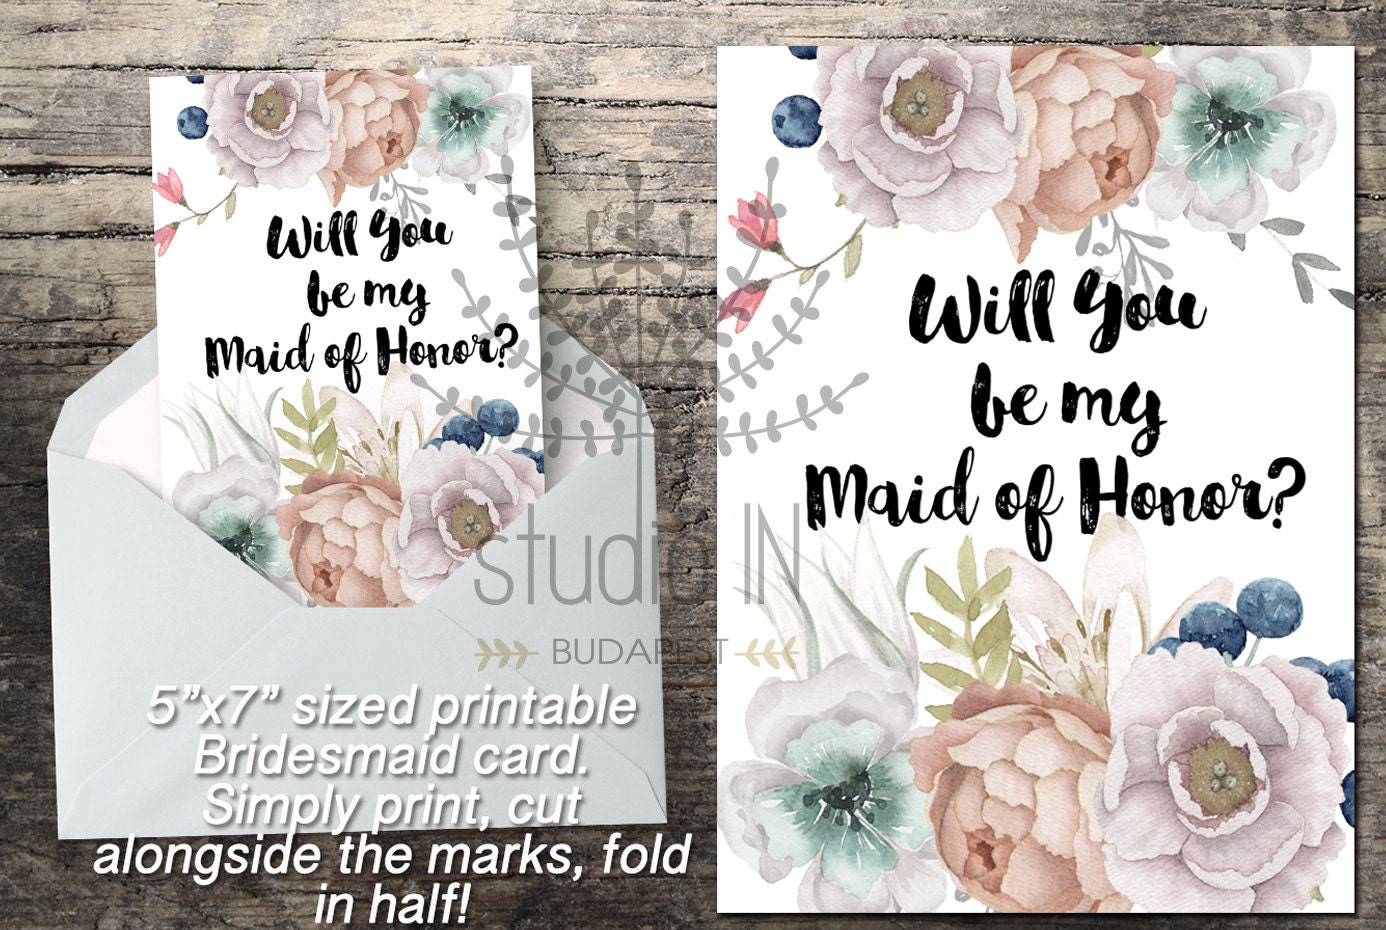 How To Be The Best Maid Of Honor: Will You Be My Maid Of Honor Printable Maid Of Honor Card